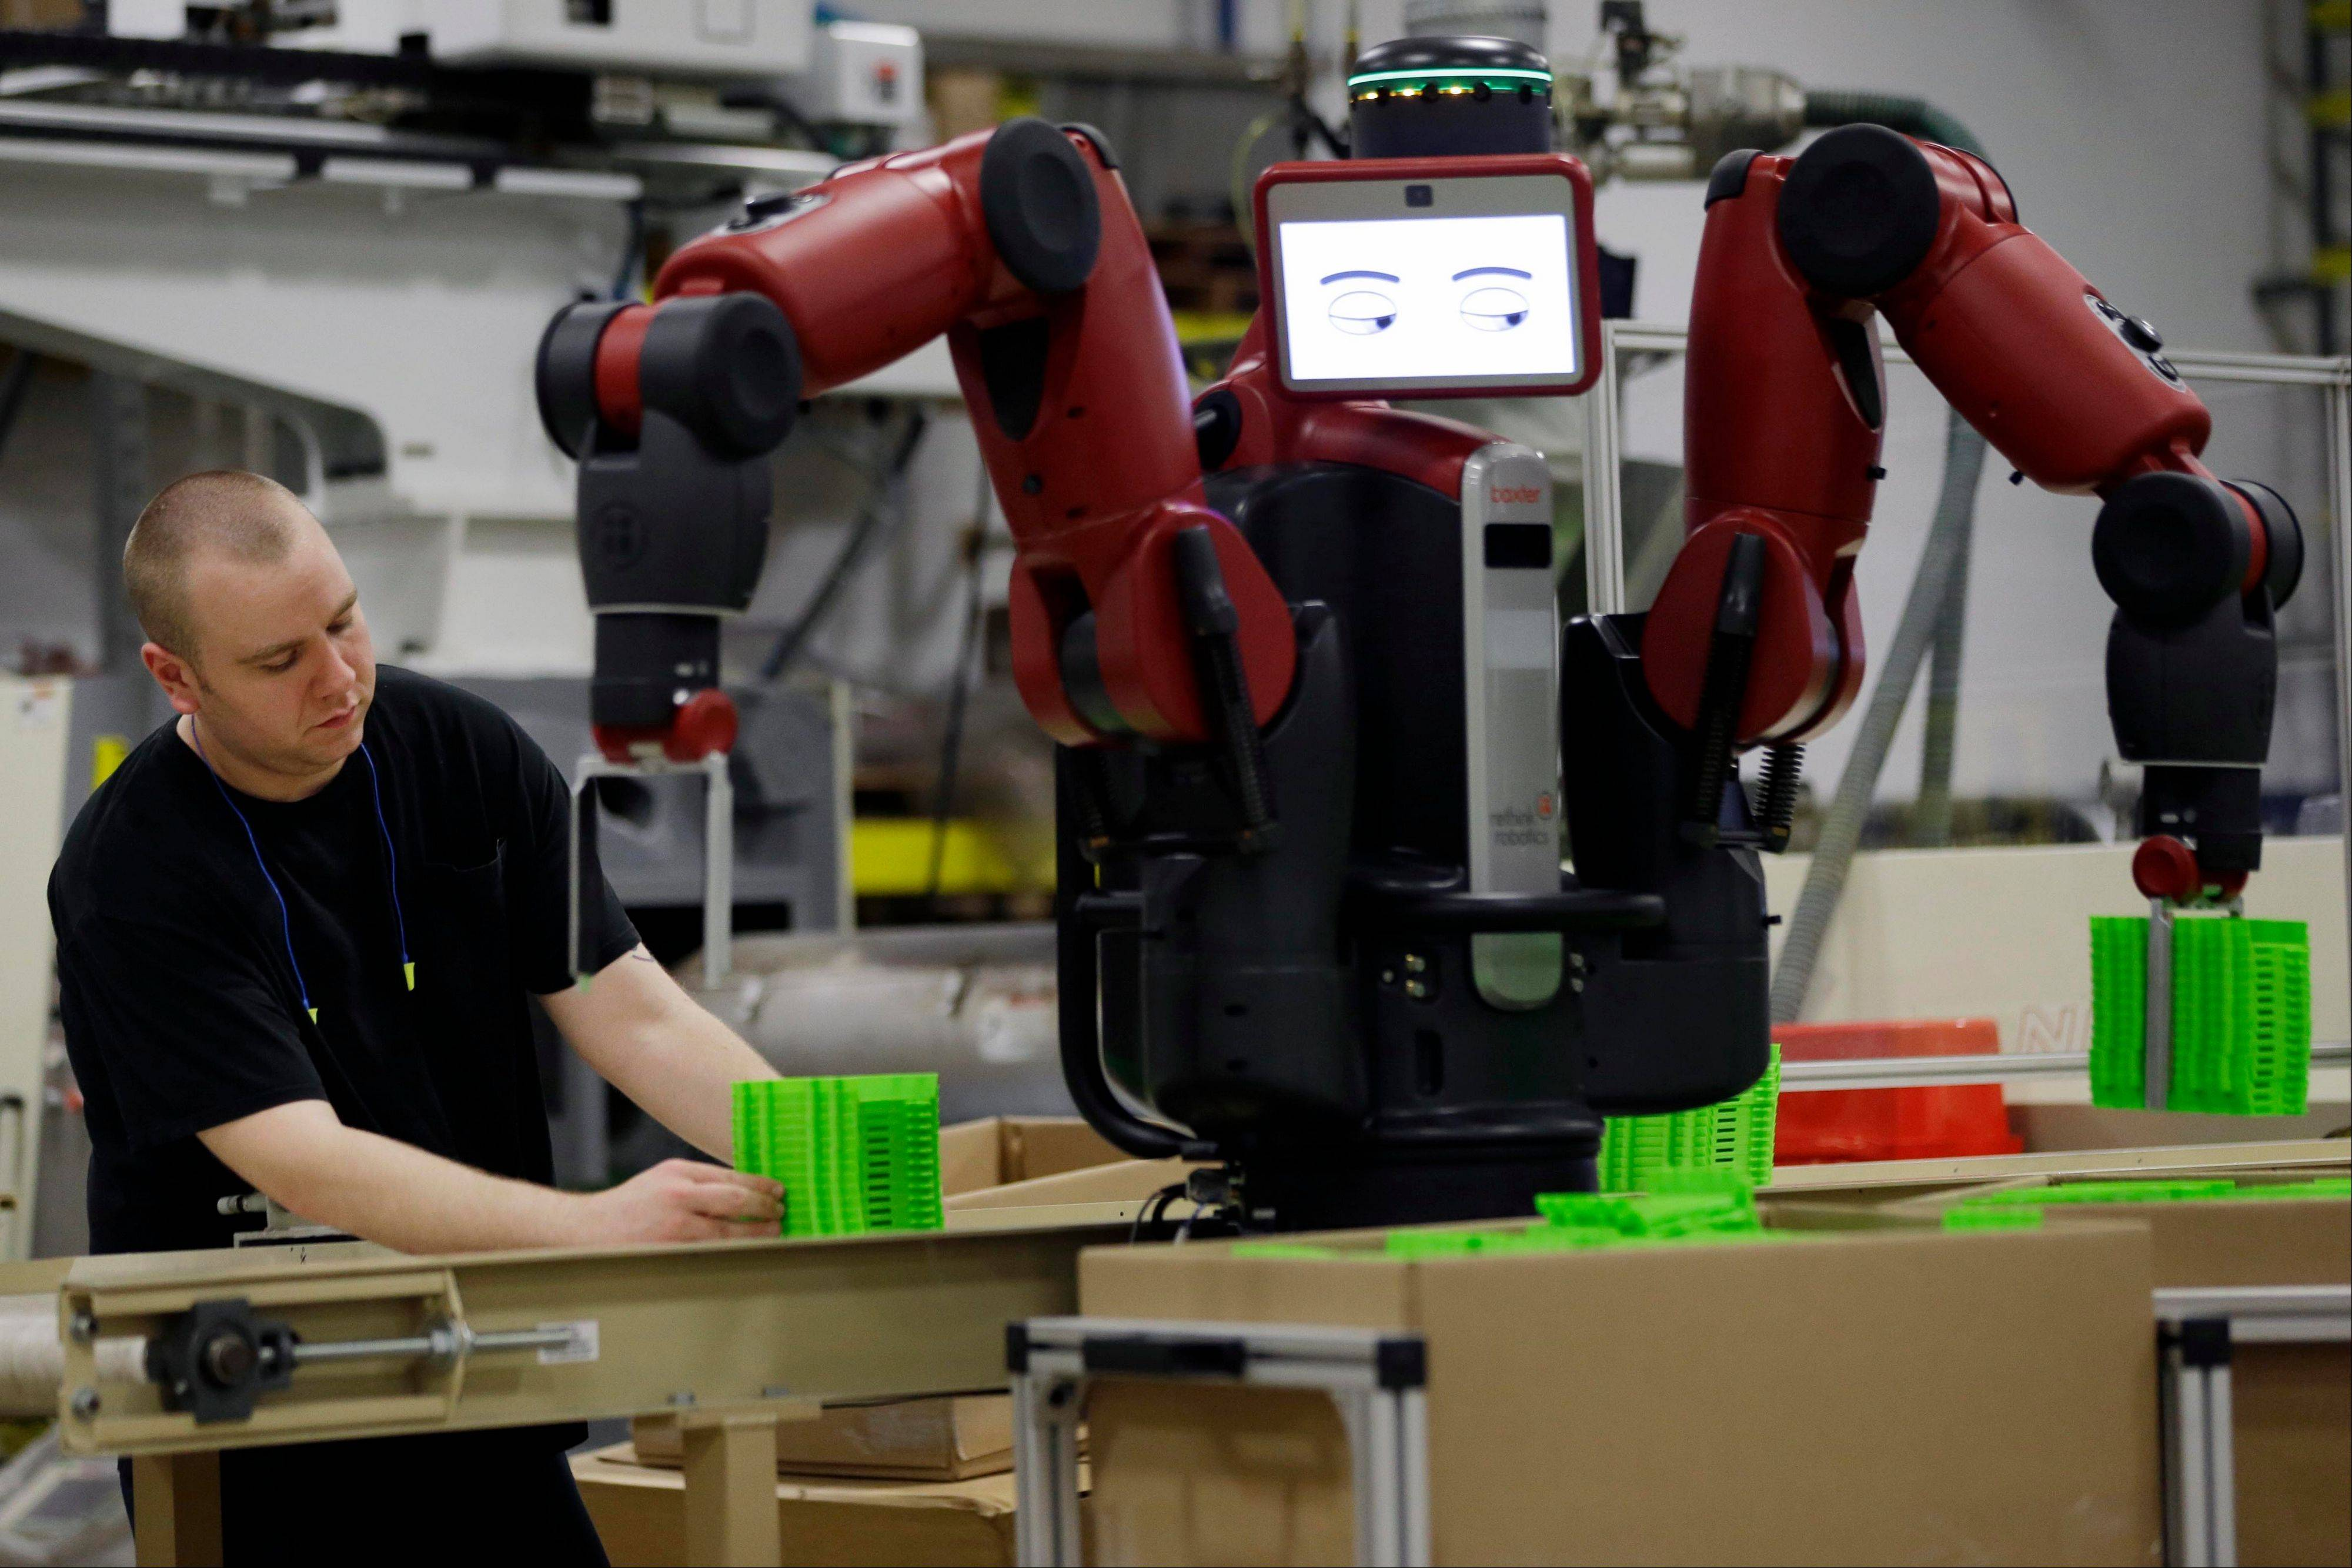 A technician works with Baxter, an adaptive manufacturing robot created by Rethink Robotics at The Rodon Group manufacturing facility, Tuesday in Hatfield, Pa. There are three jobs open at Rodon Group, a plastic parts manufacturer near Philadelphia. But despite the reports of a shortage of skilled workers nationwide, CEO Michael Araten isn't sweating it.